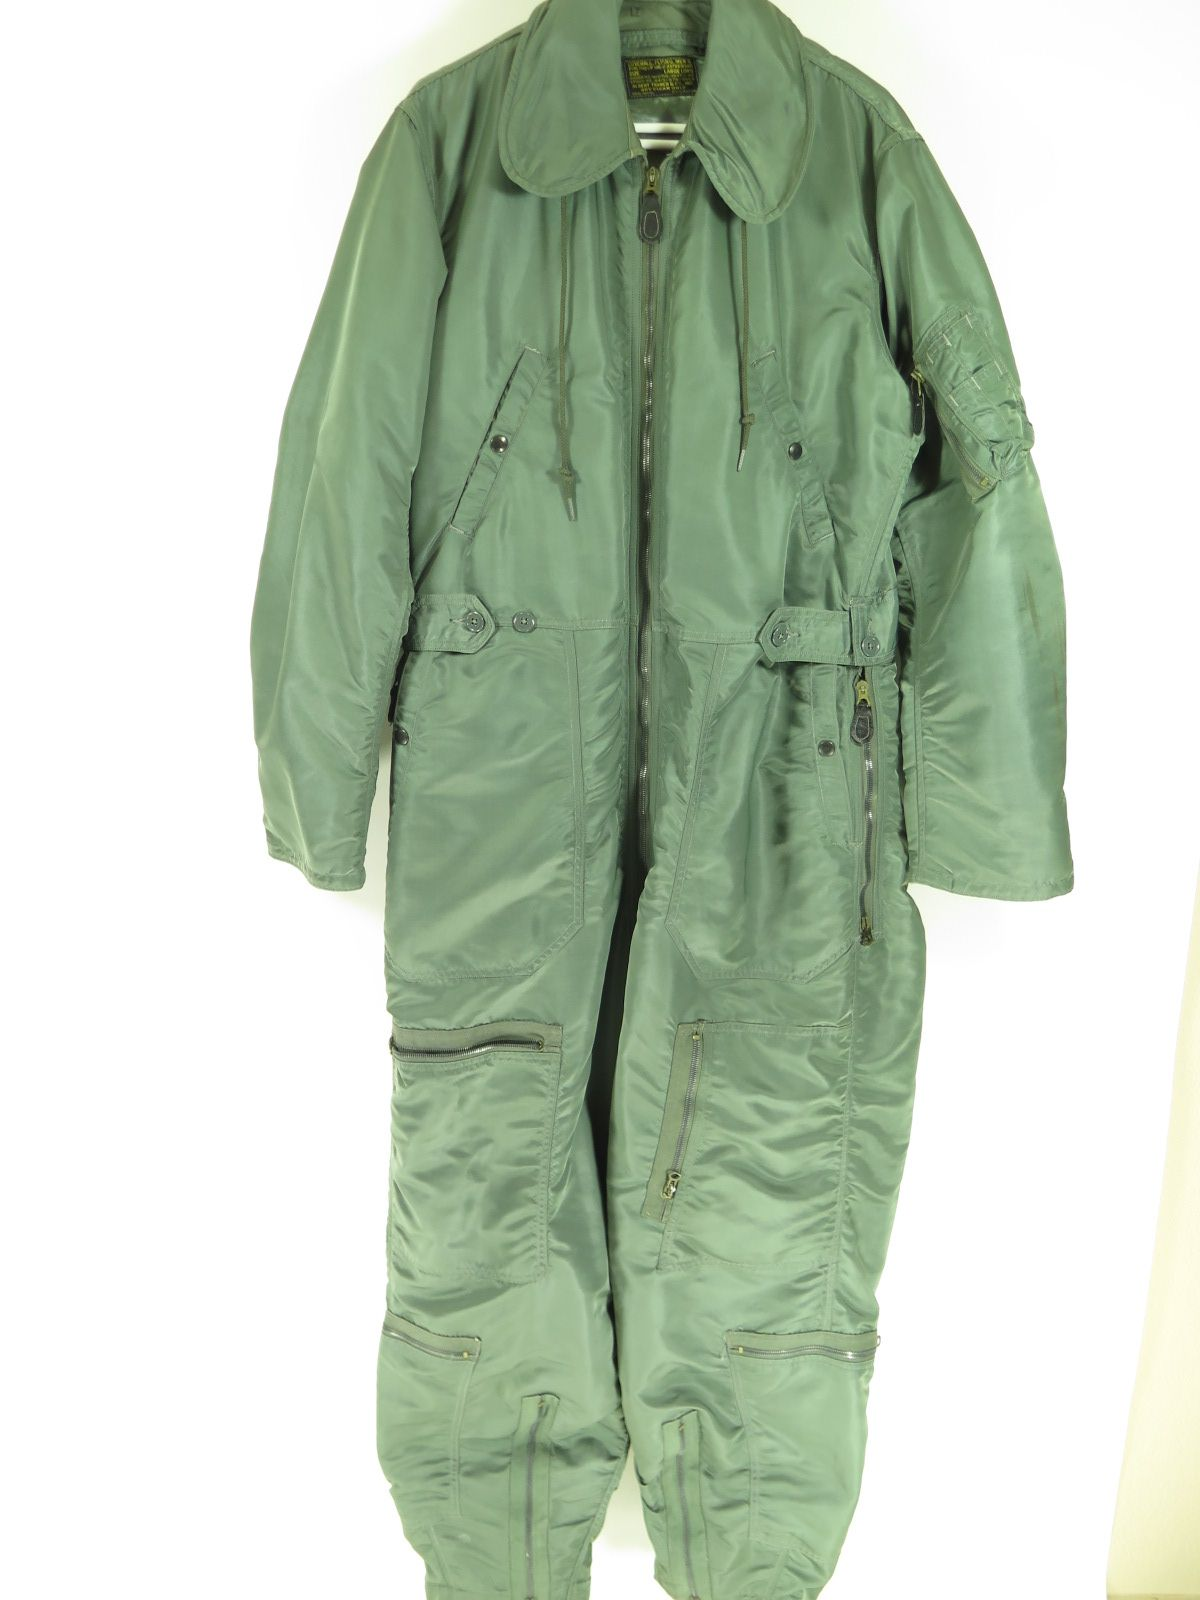 44e4bda8393 Vintage 70s CWU-1 P flight suit coveralls sage green by Albert Turner. Men s  Large Long. Find more men s and women s authentic vintage clothing at The  ...